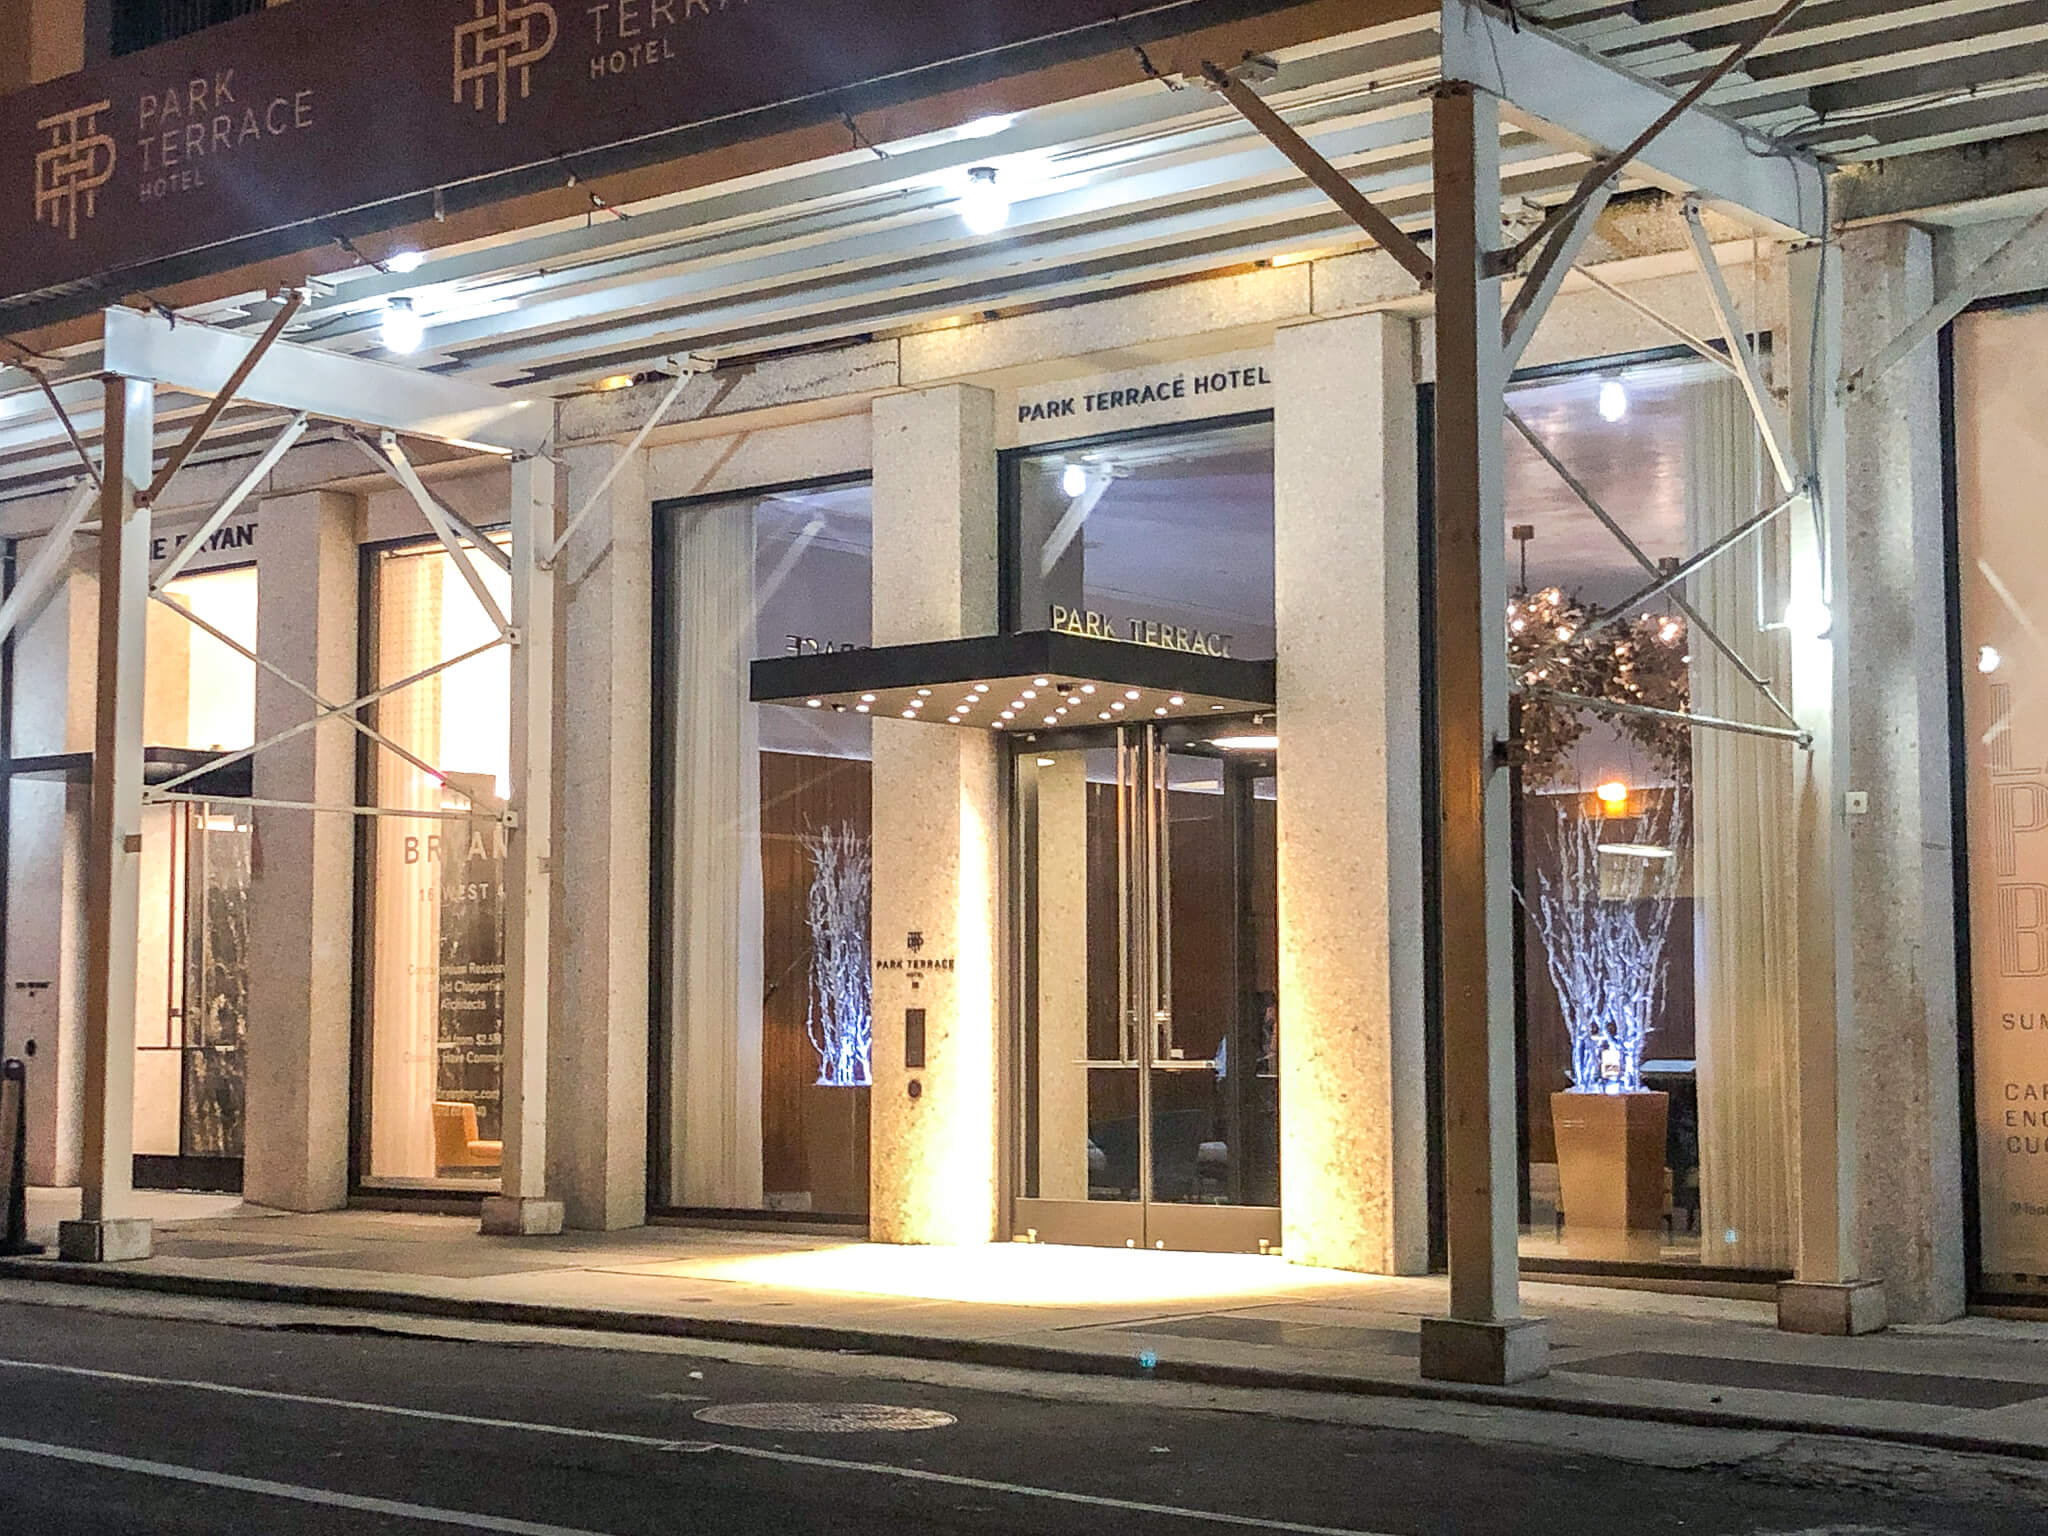 Park Terrace Hotel: Midtown Luxury Across from Bryant Park, NYC